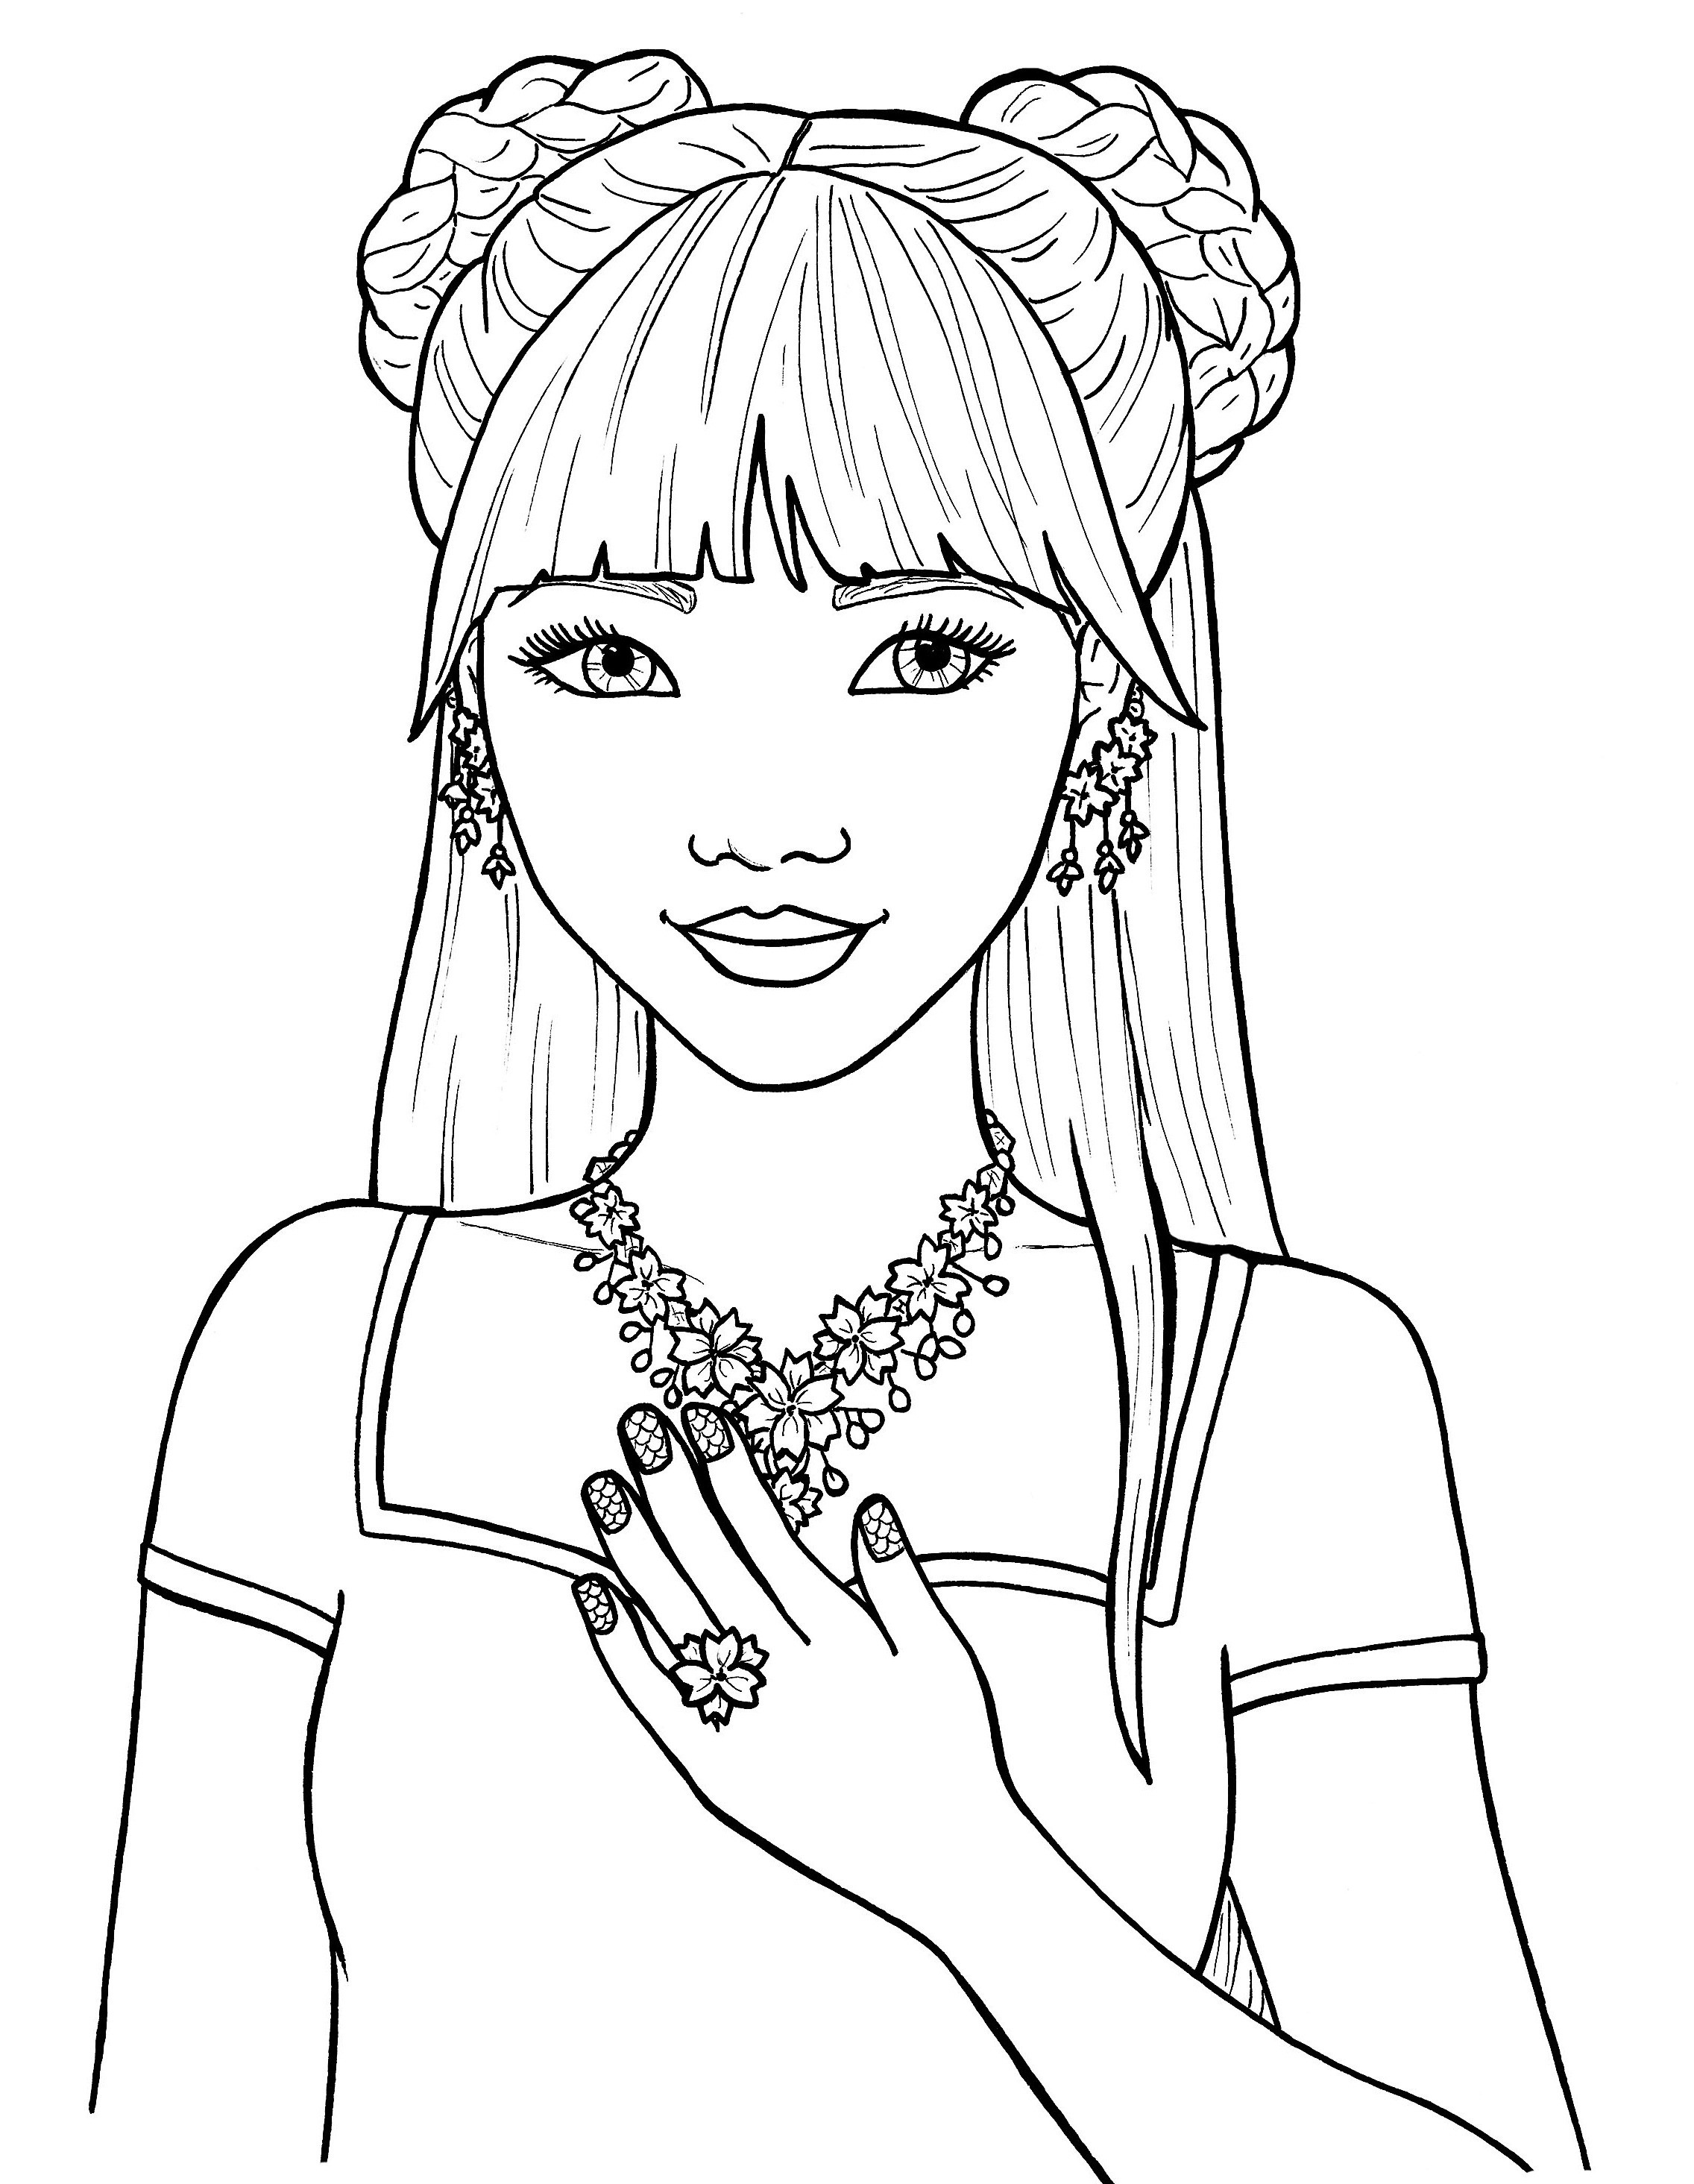 little girl coloring pictures little girl coloring pages getcoloringpagescom little girl coloring pictures